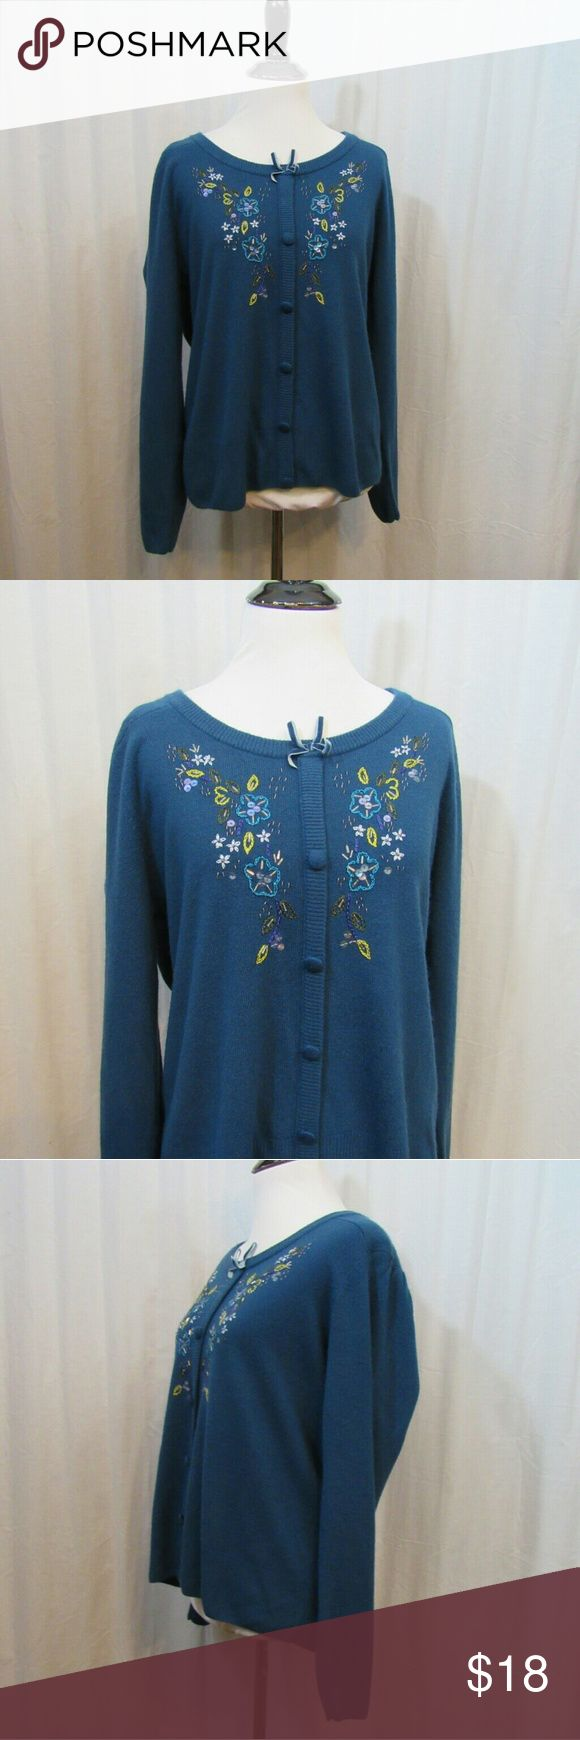 """Sag Harbor Blue Floral Embroidered Light Cardigan Brand: Sag Harbor Size: L Material: 100% Acrylic Care Instructions: Hand Wash  Bust: 42"""" Sleeves: 23"""" Length: 25""""  All clothes are in excellent used condition. No tears, stains or holes unless otherwise I noted.   P127 Sag Harbor Sweaters Cardigans"""